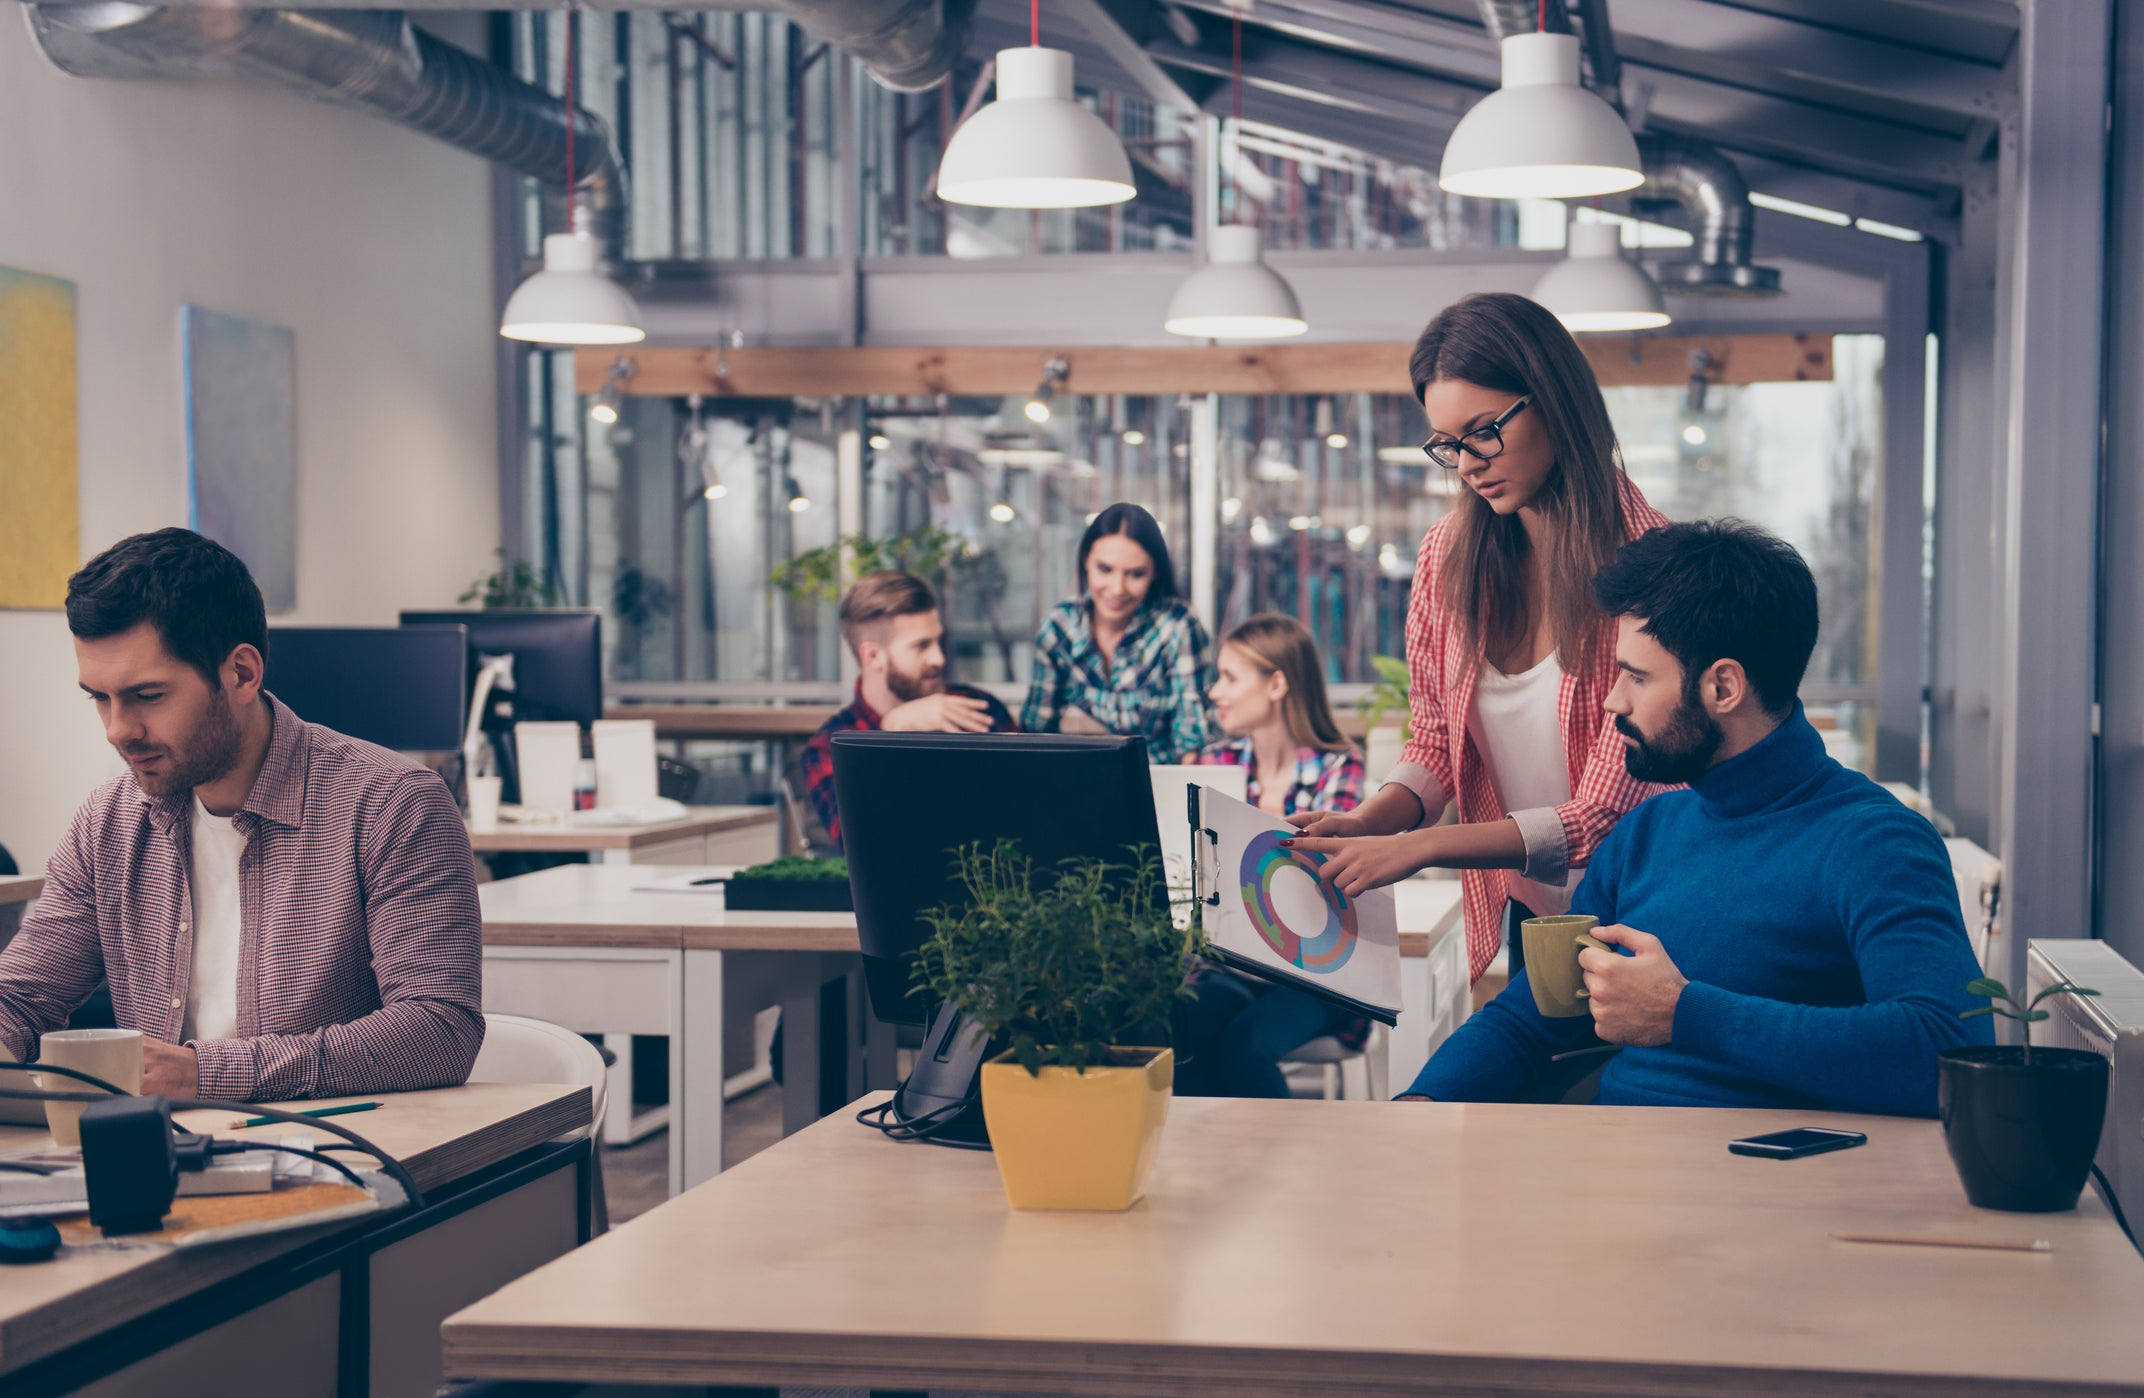 People work in a share office.